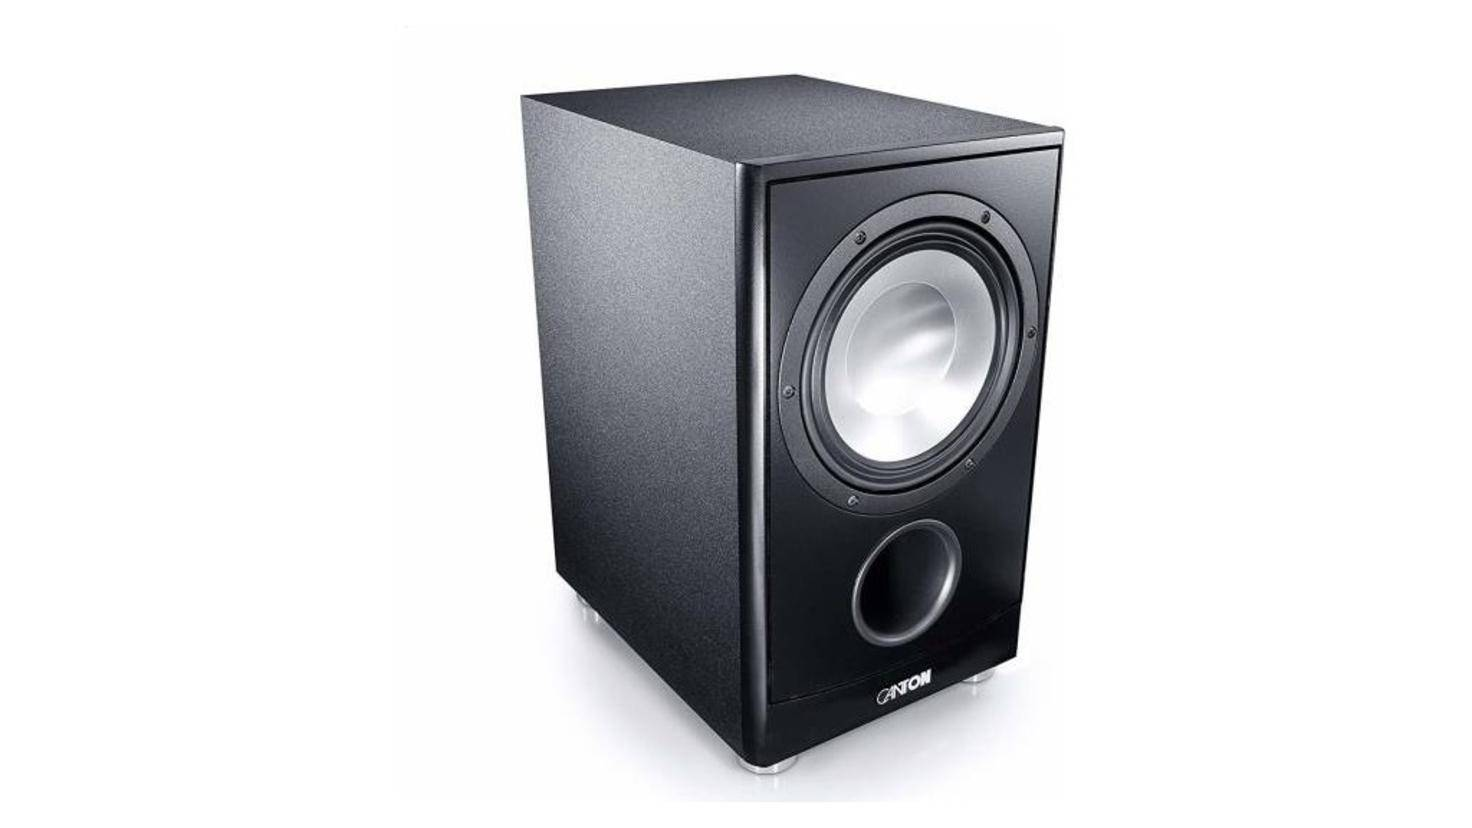 canton-as-85-3-subwoofer